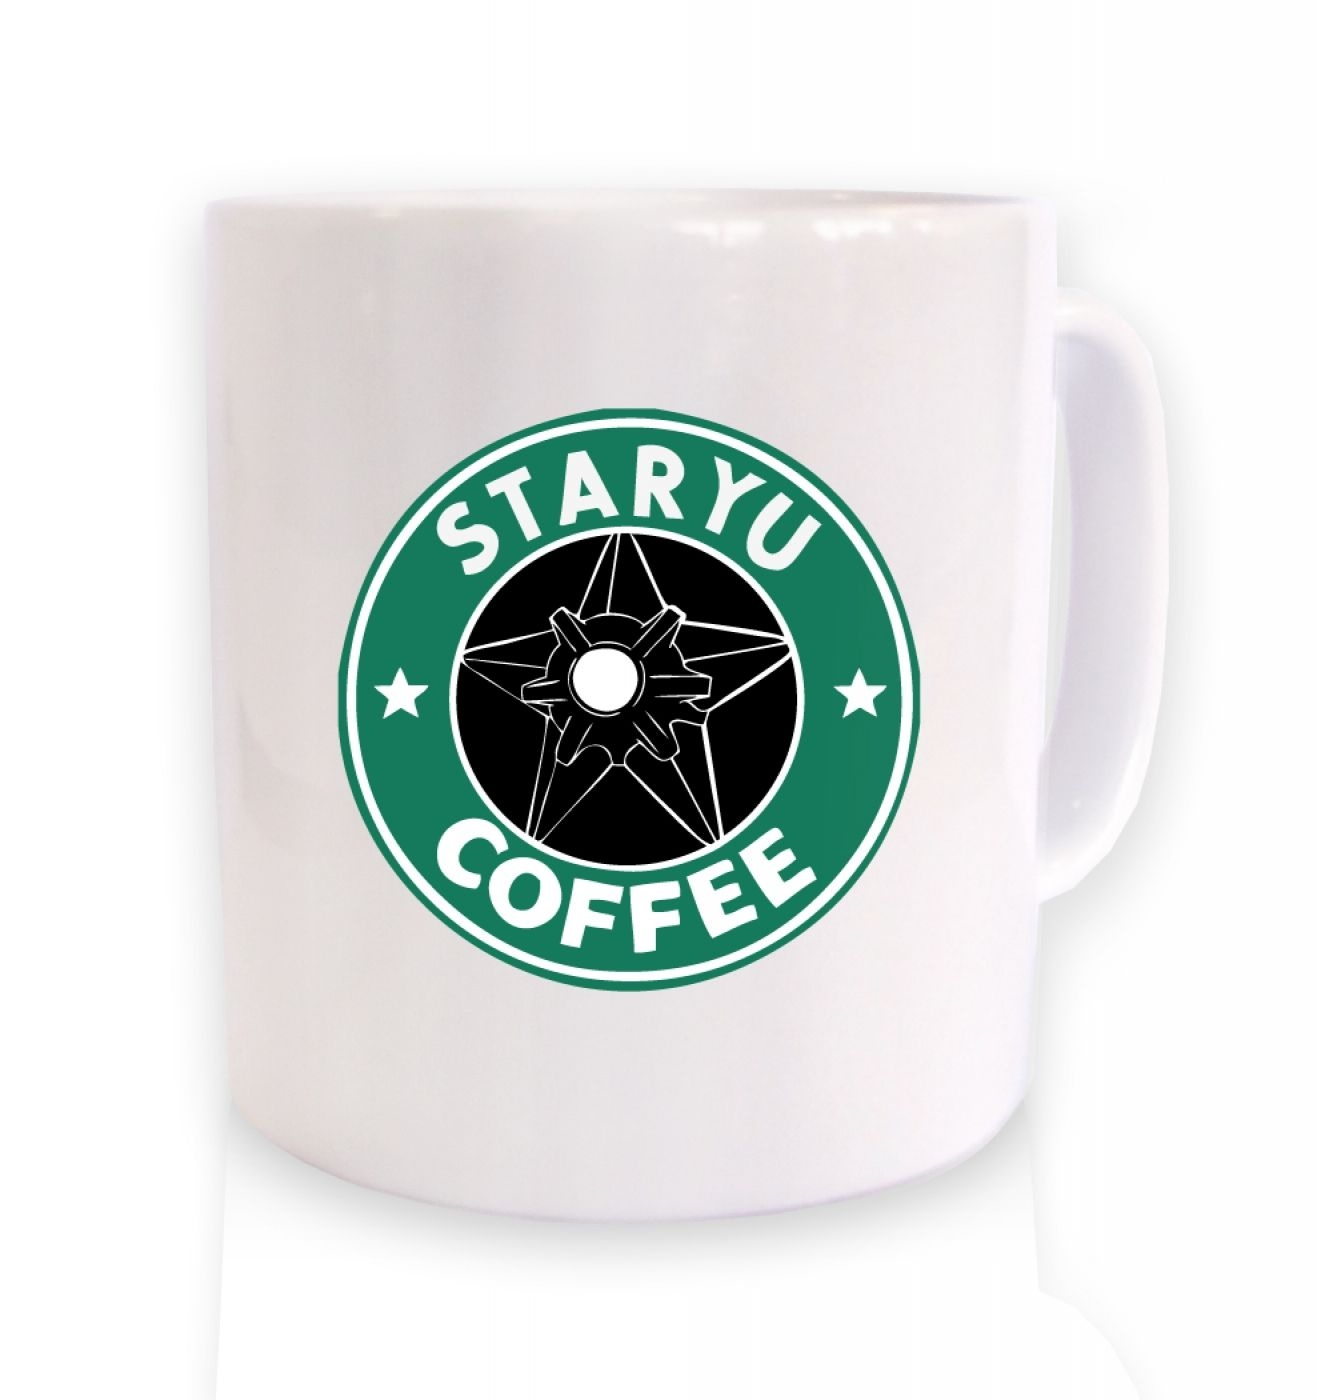 Staryu Coffee Mug - Inspired by Pokemon